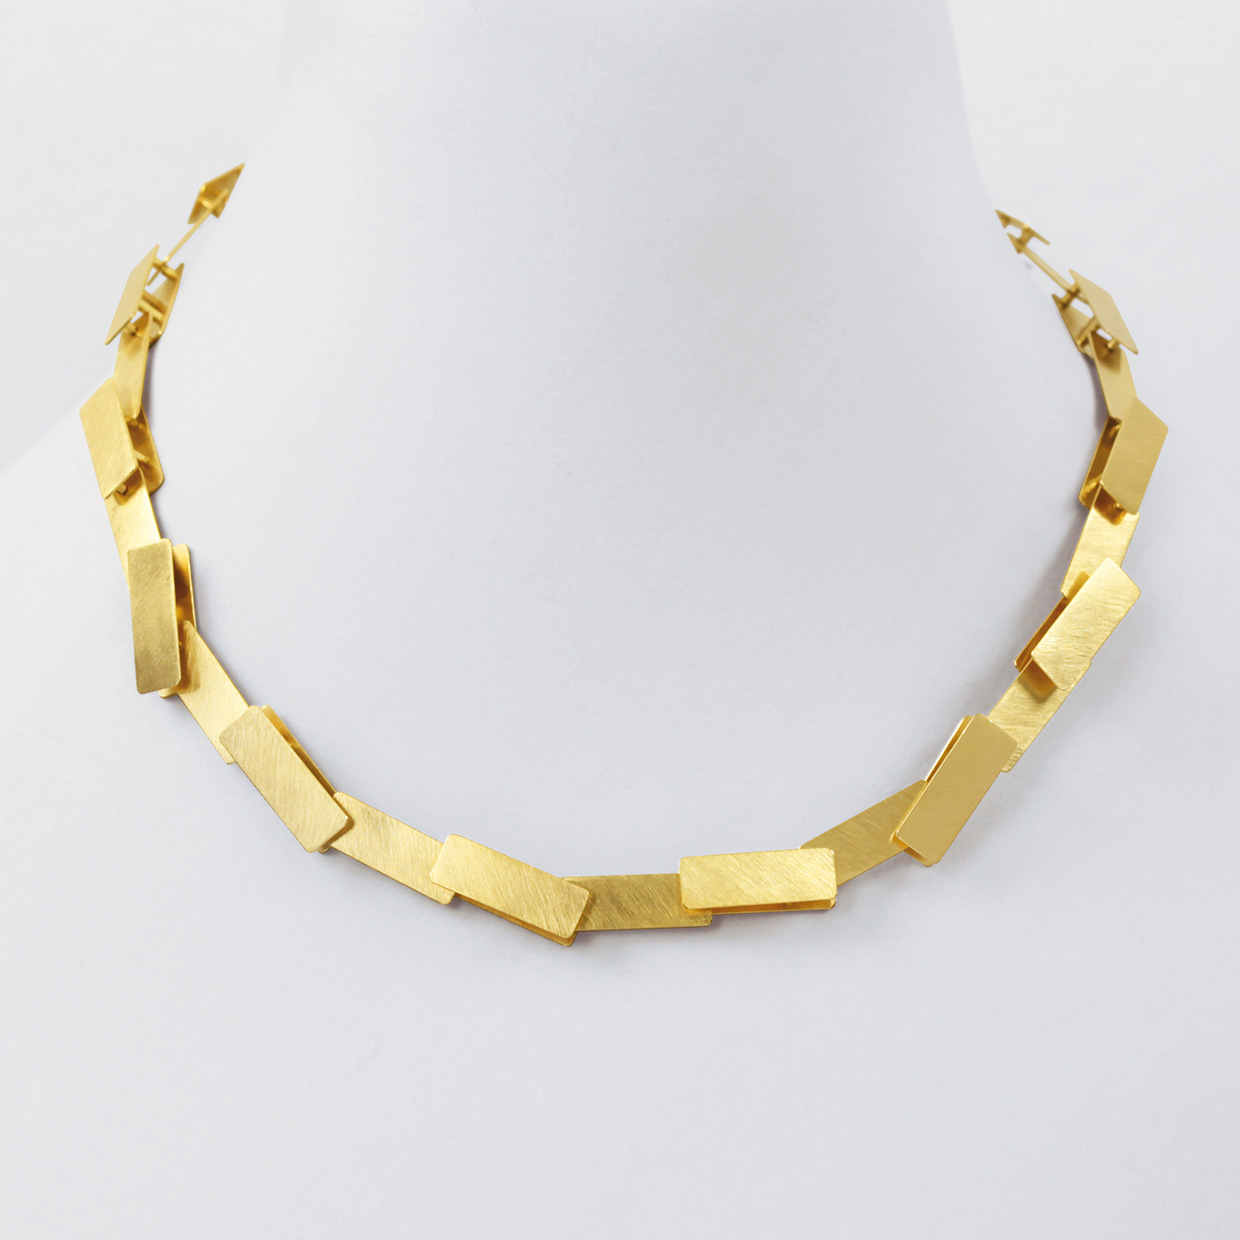 necklace  2011  gold  750  437x9  mm